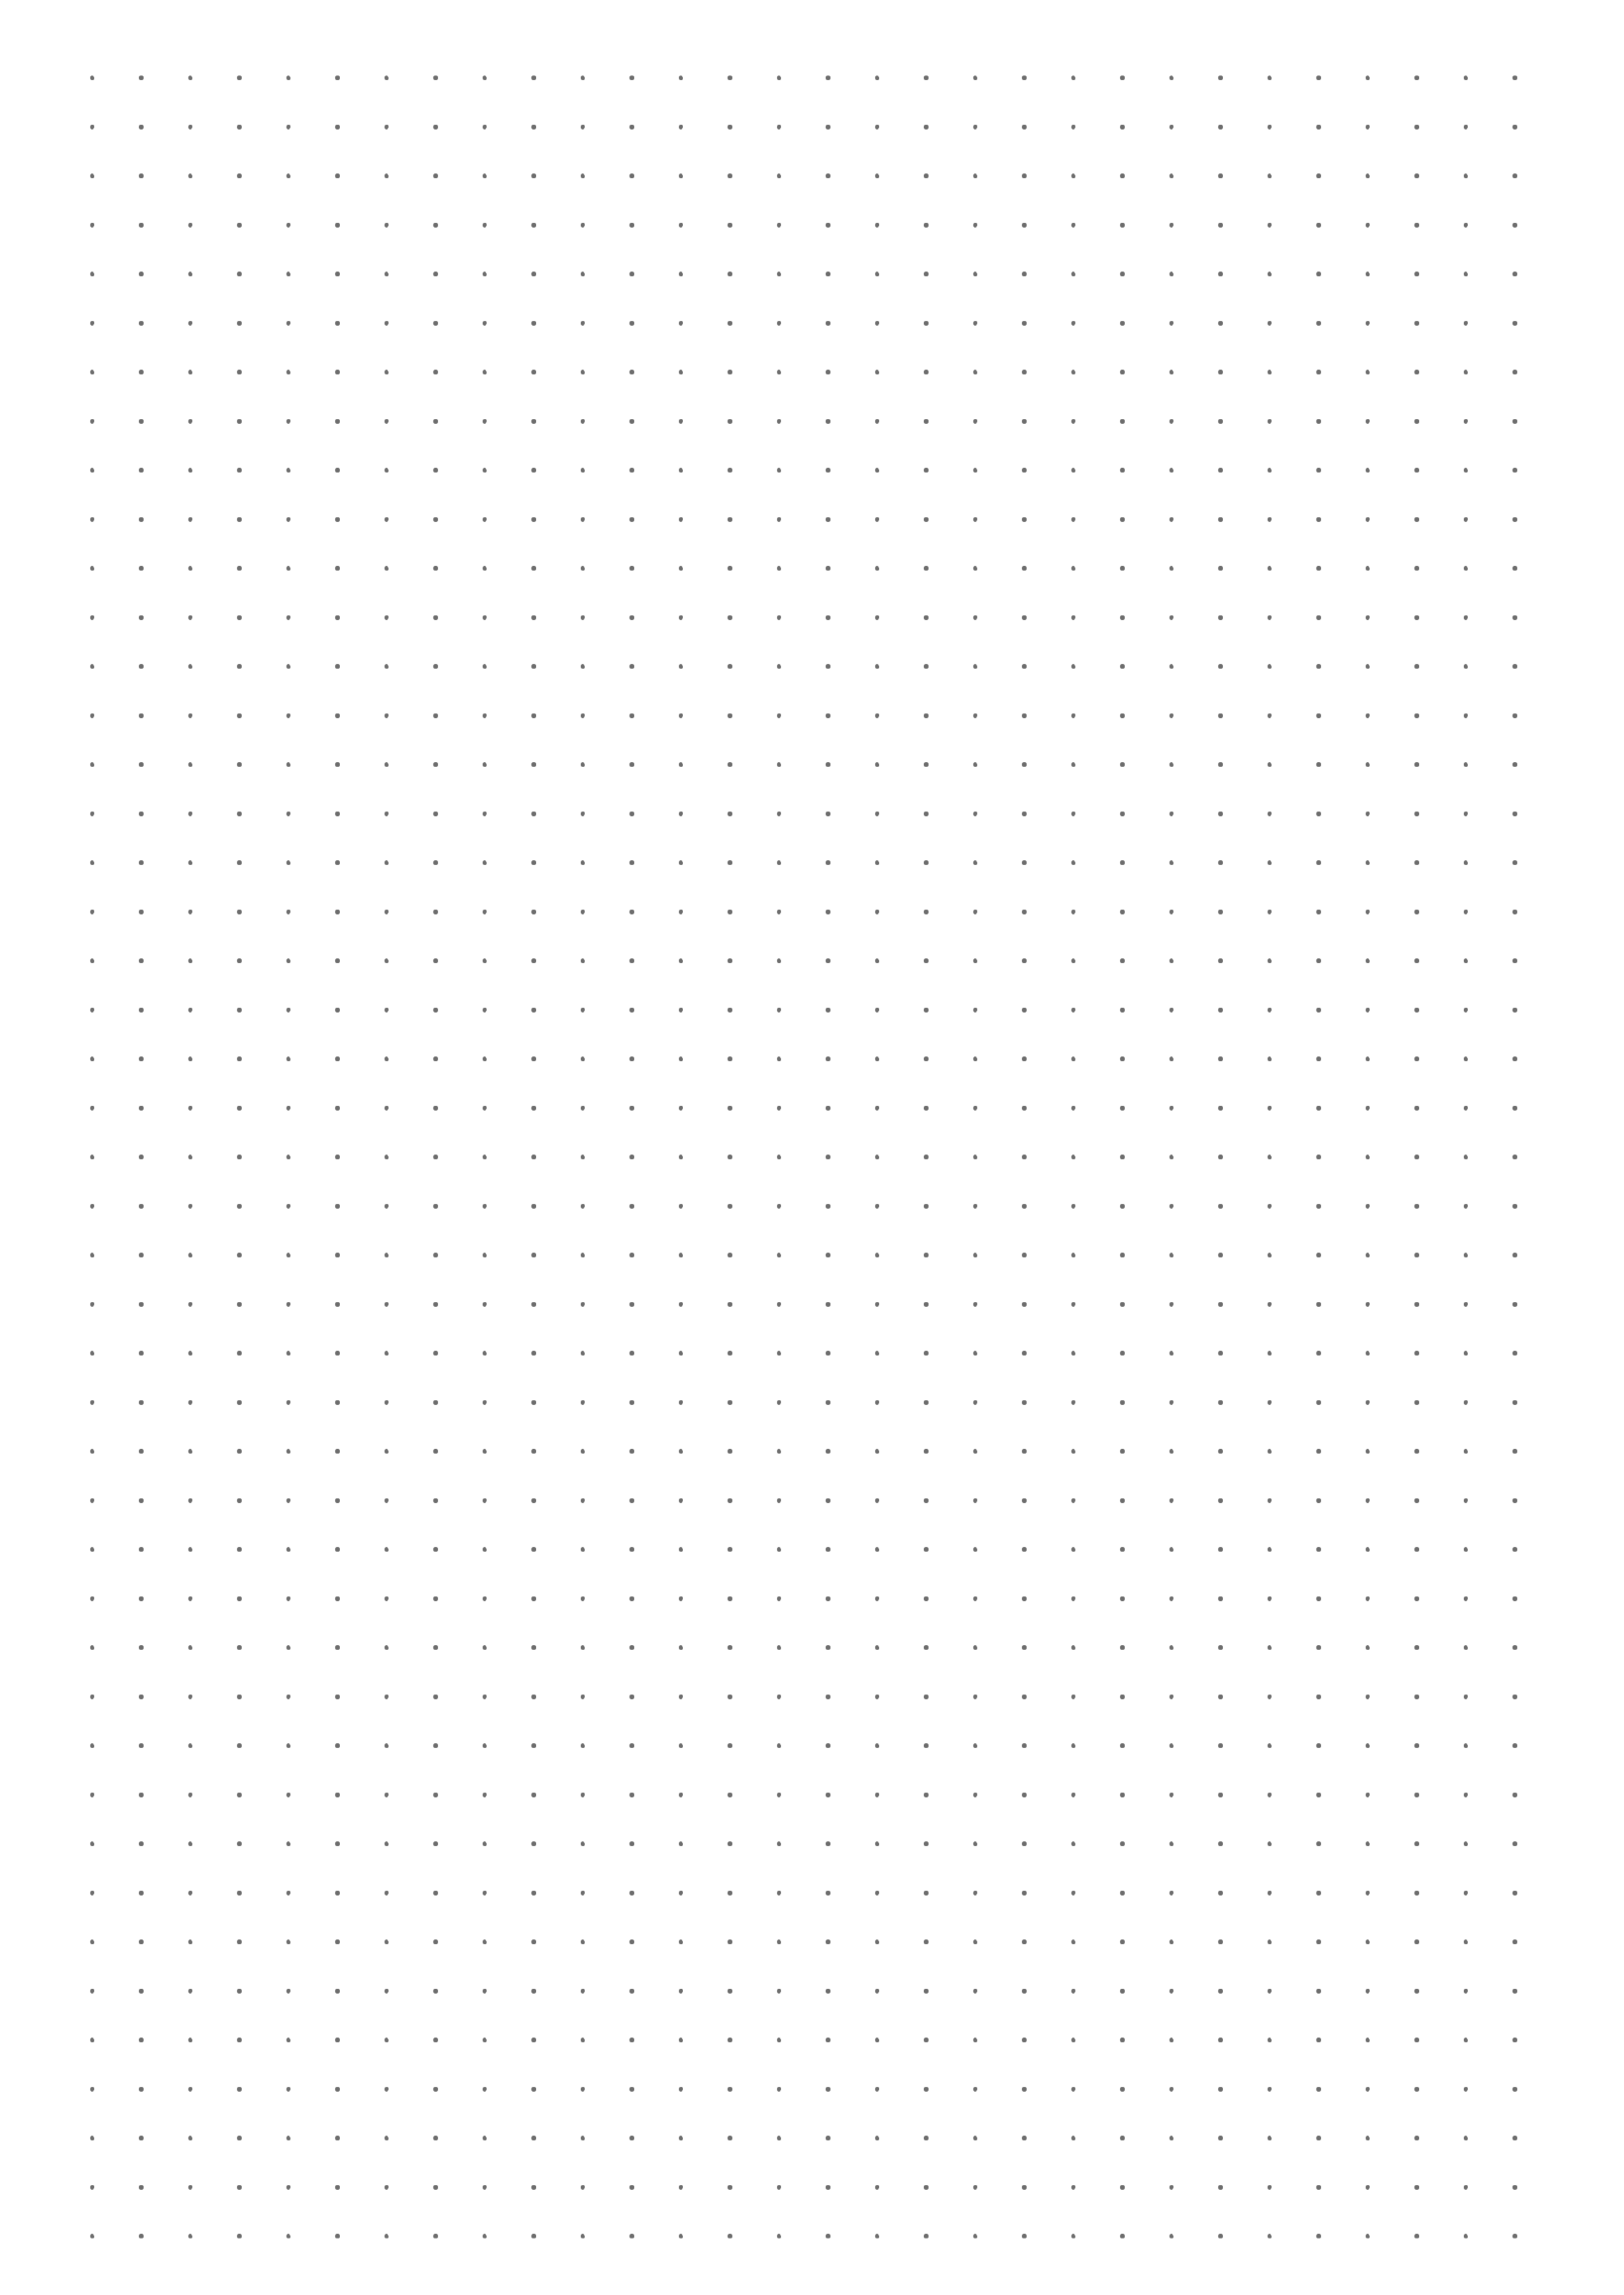 Printable Dot Grid Paper With 4 Dots Per Inch Download